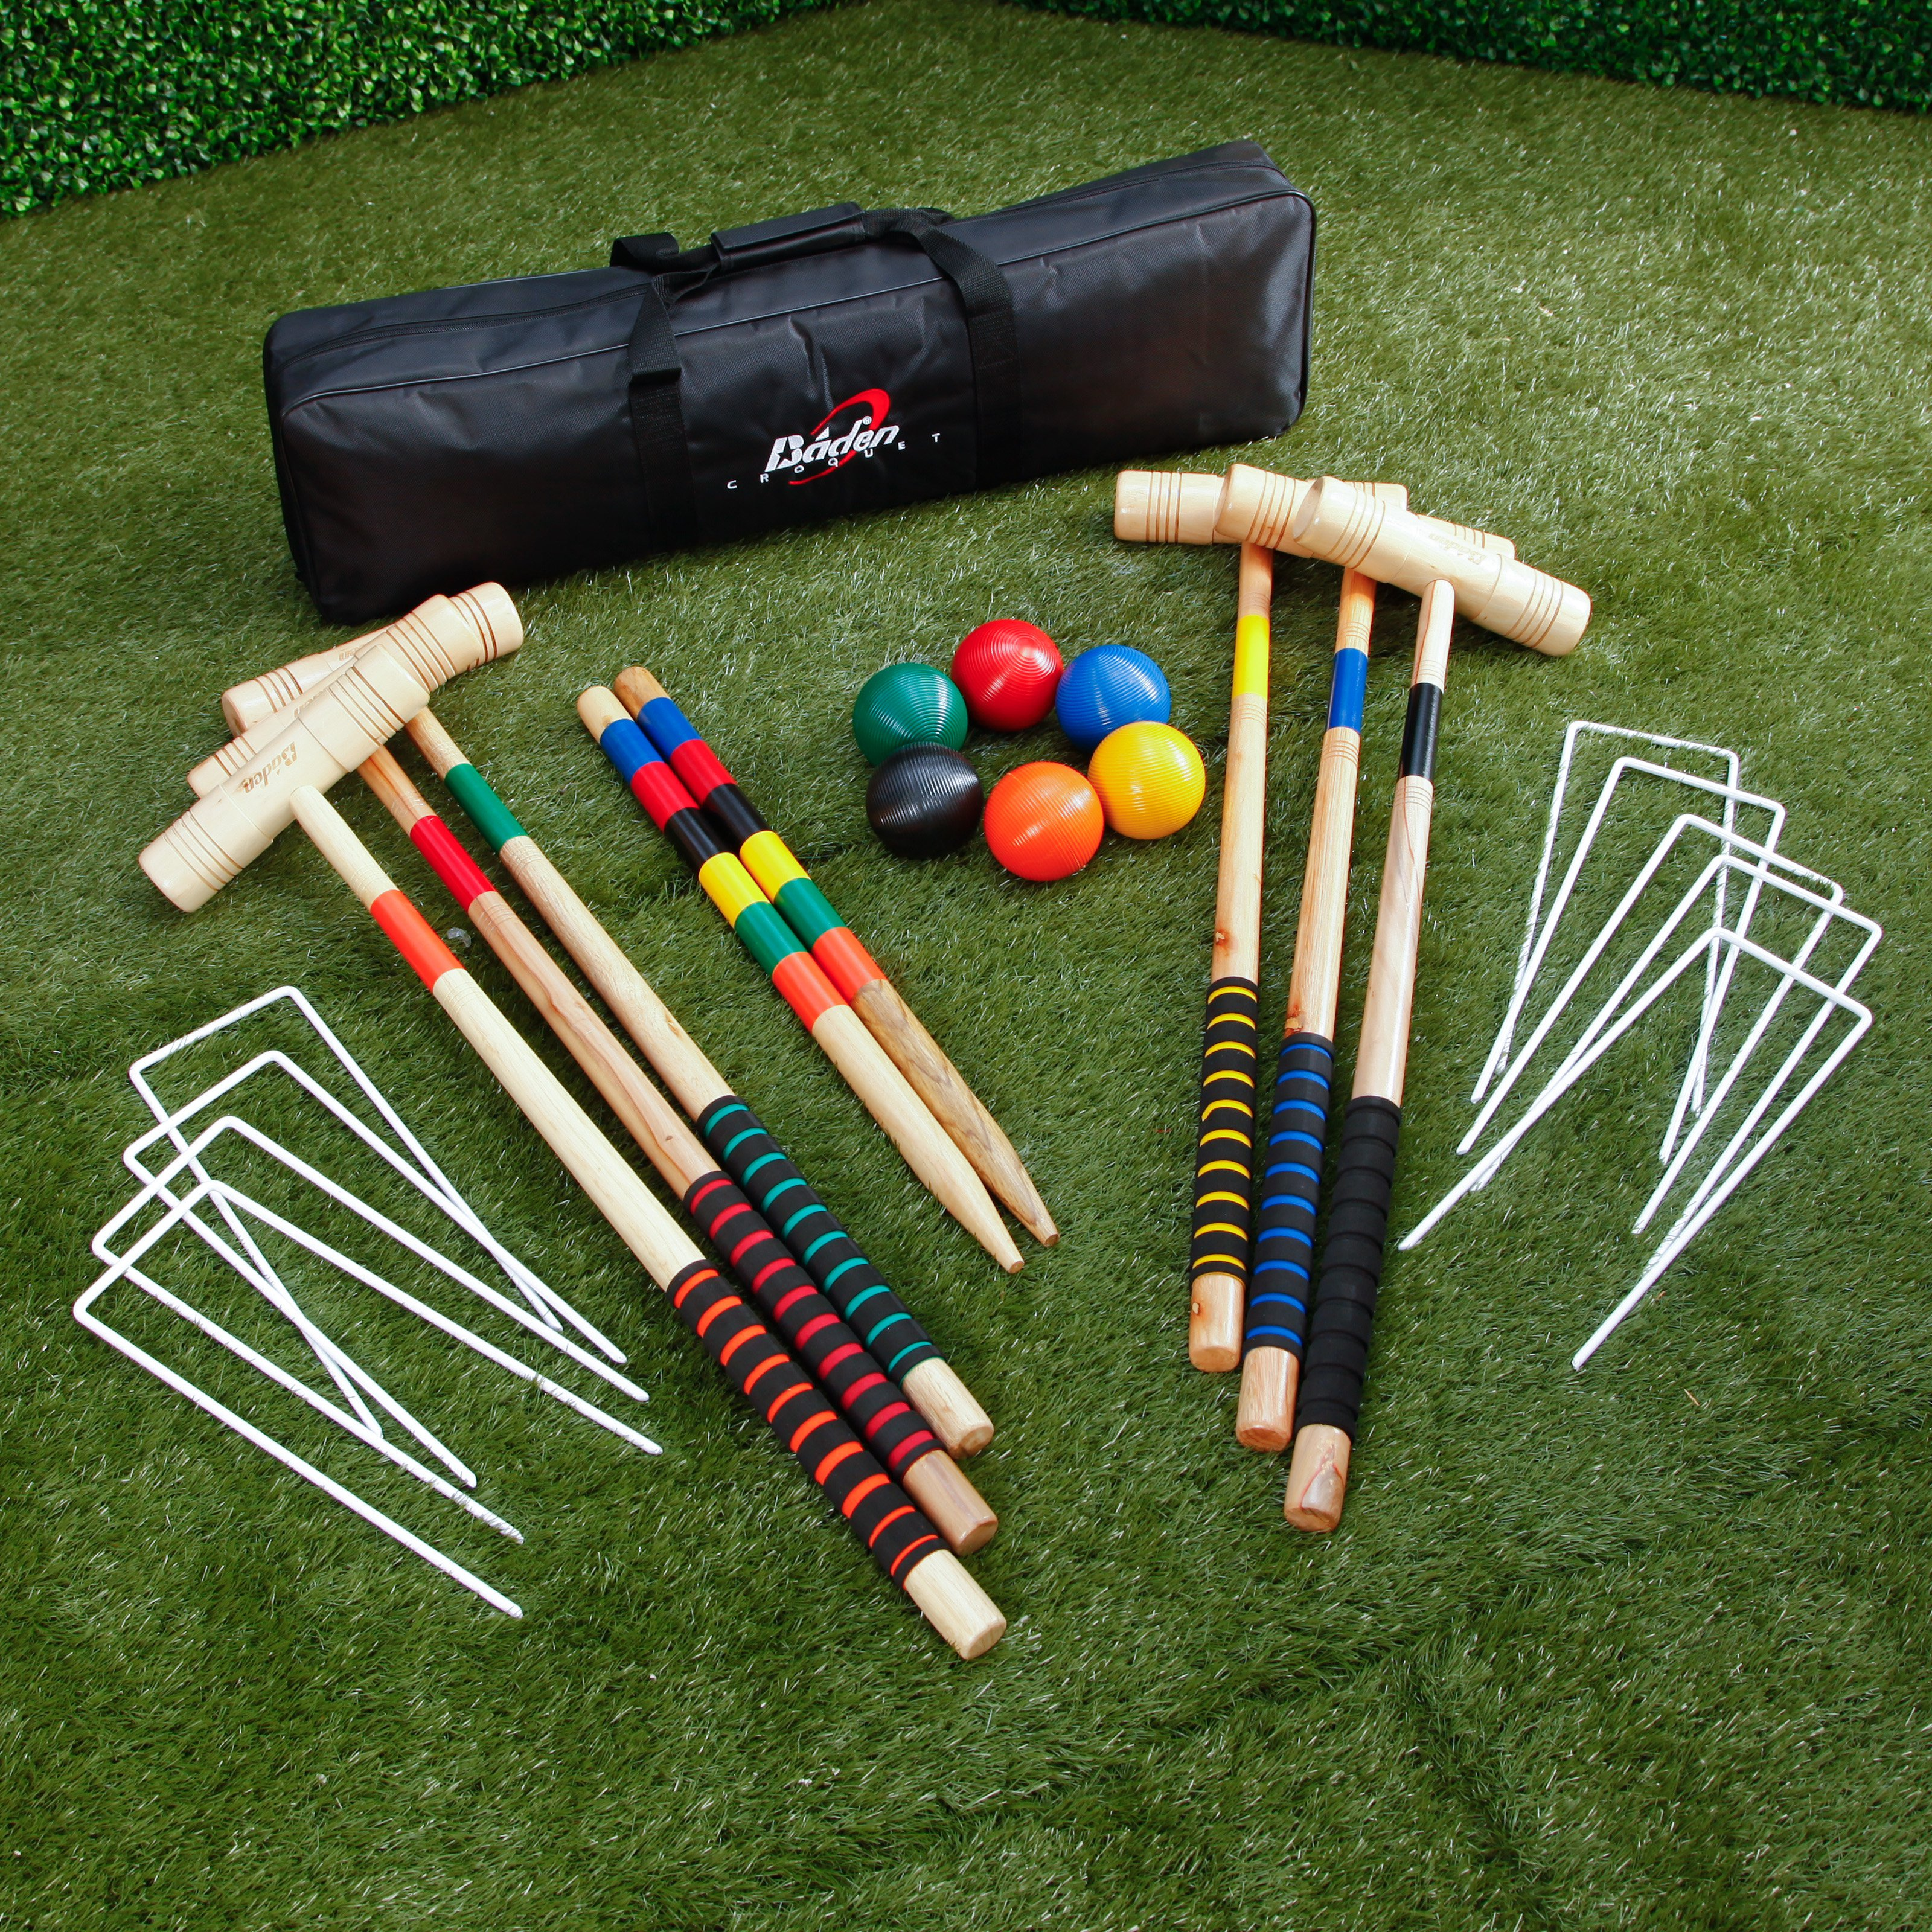 Baden Champions Series Croquet Set